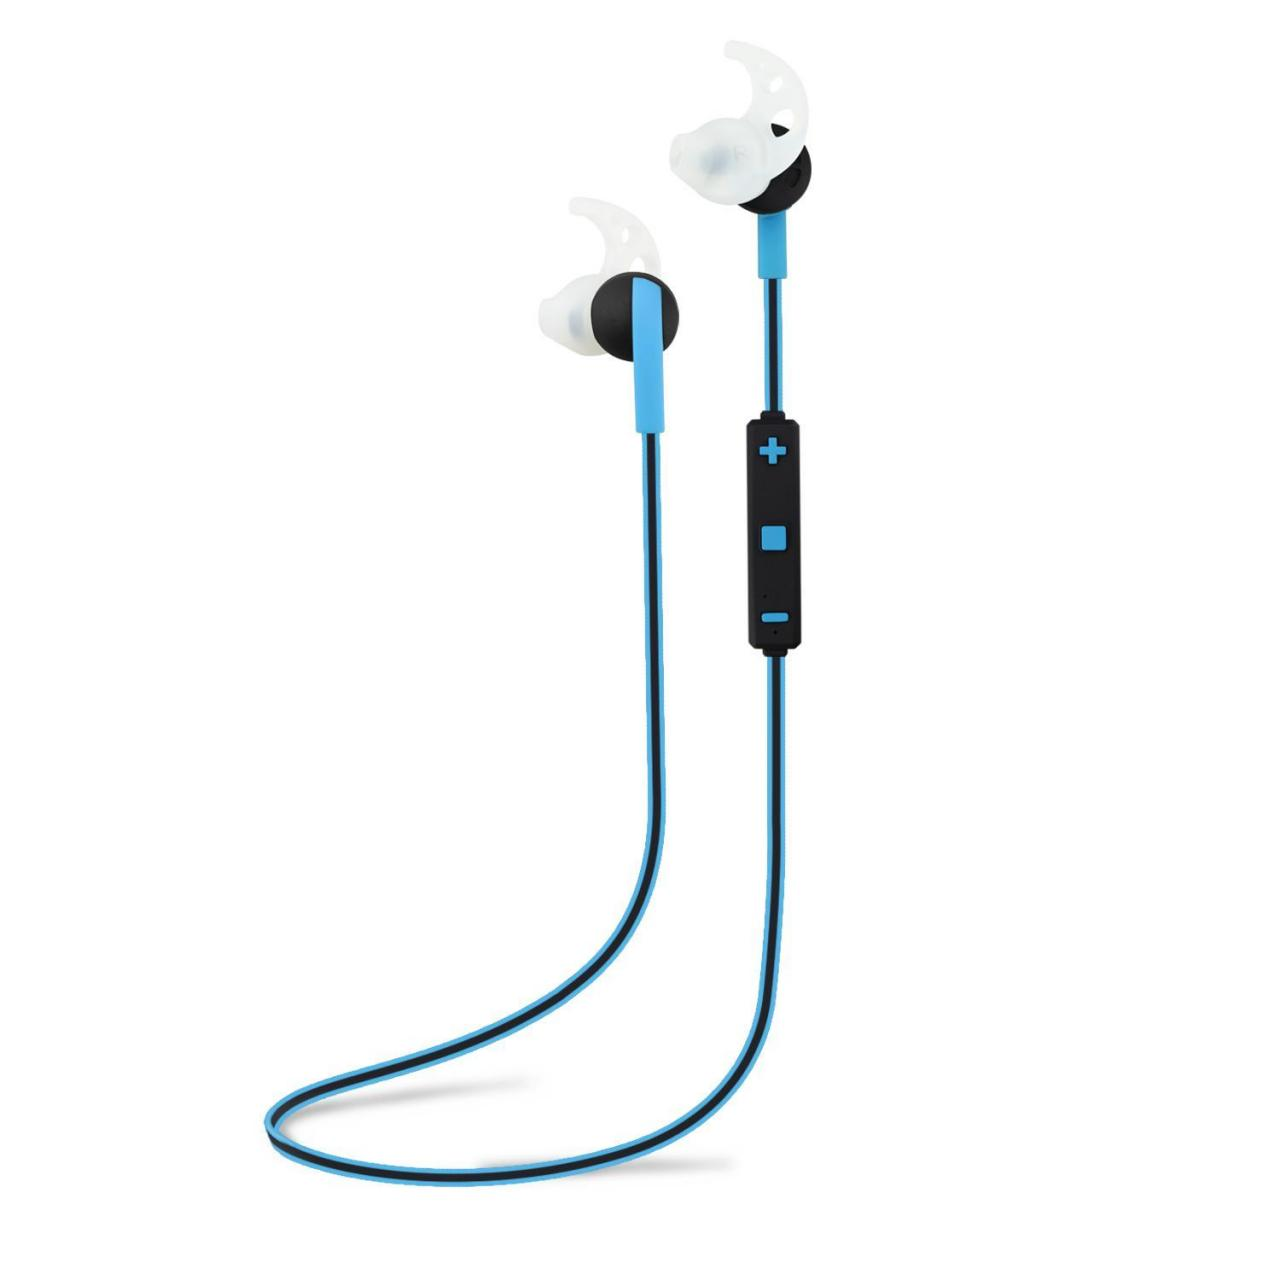 bluetooth earbuds bluethooth headset earphones ear